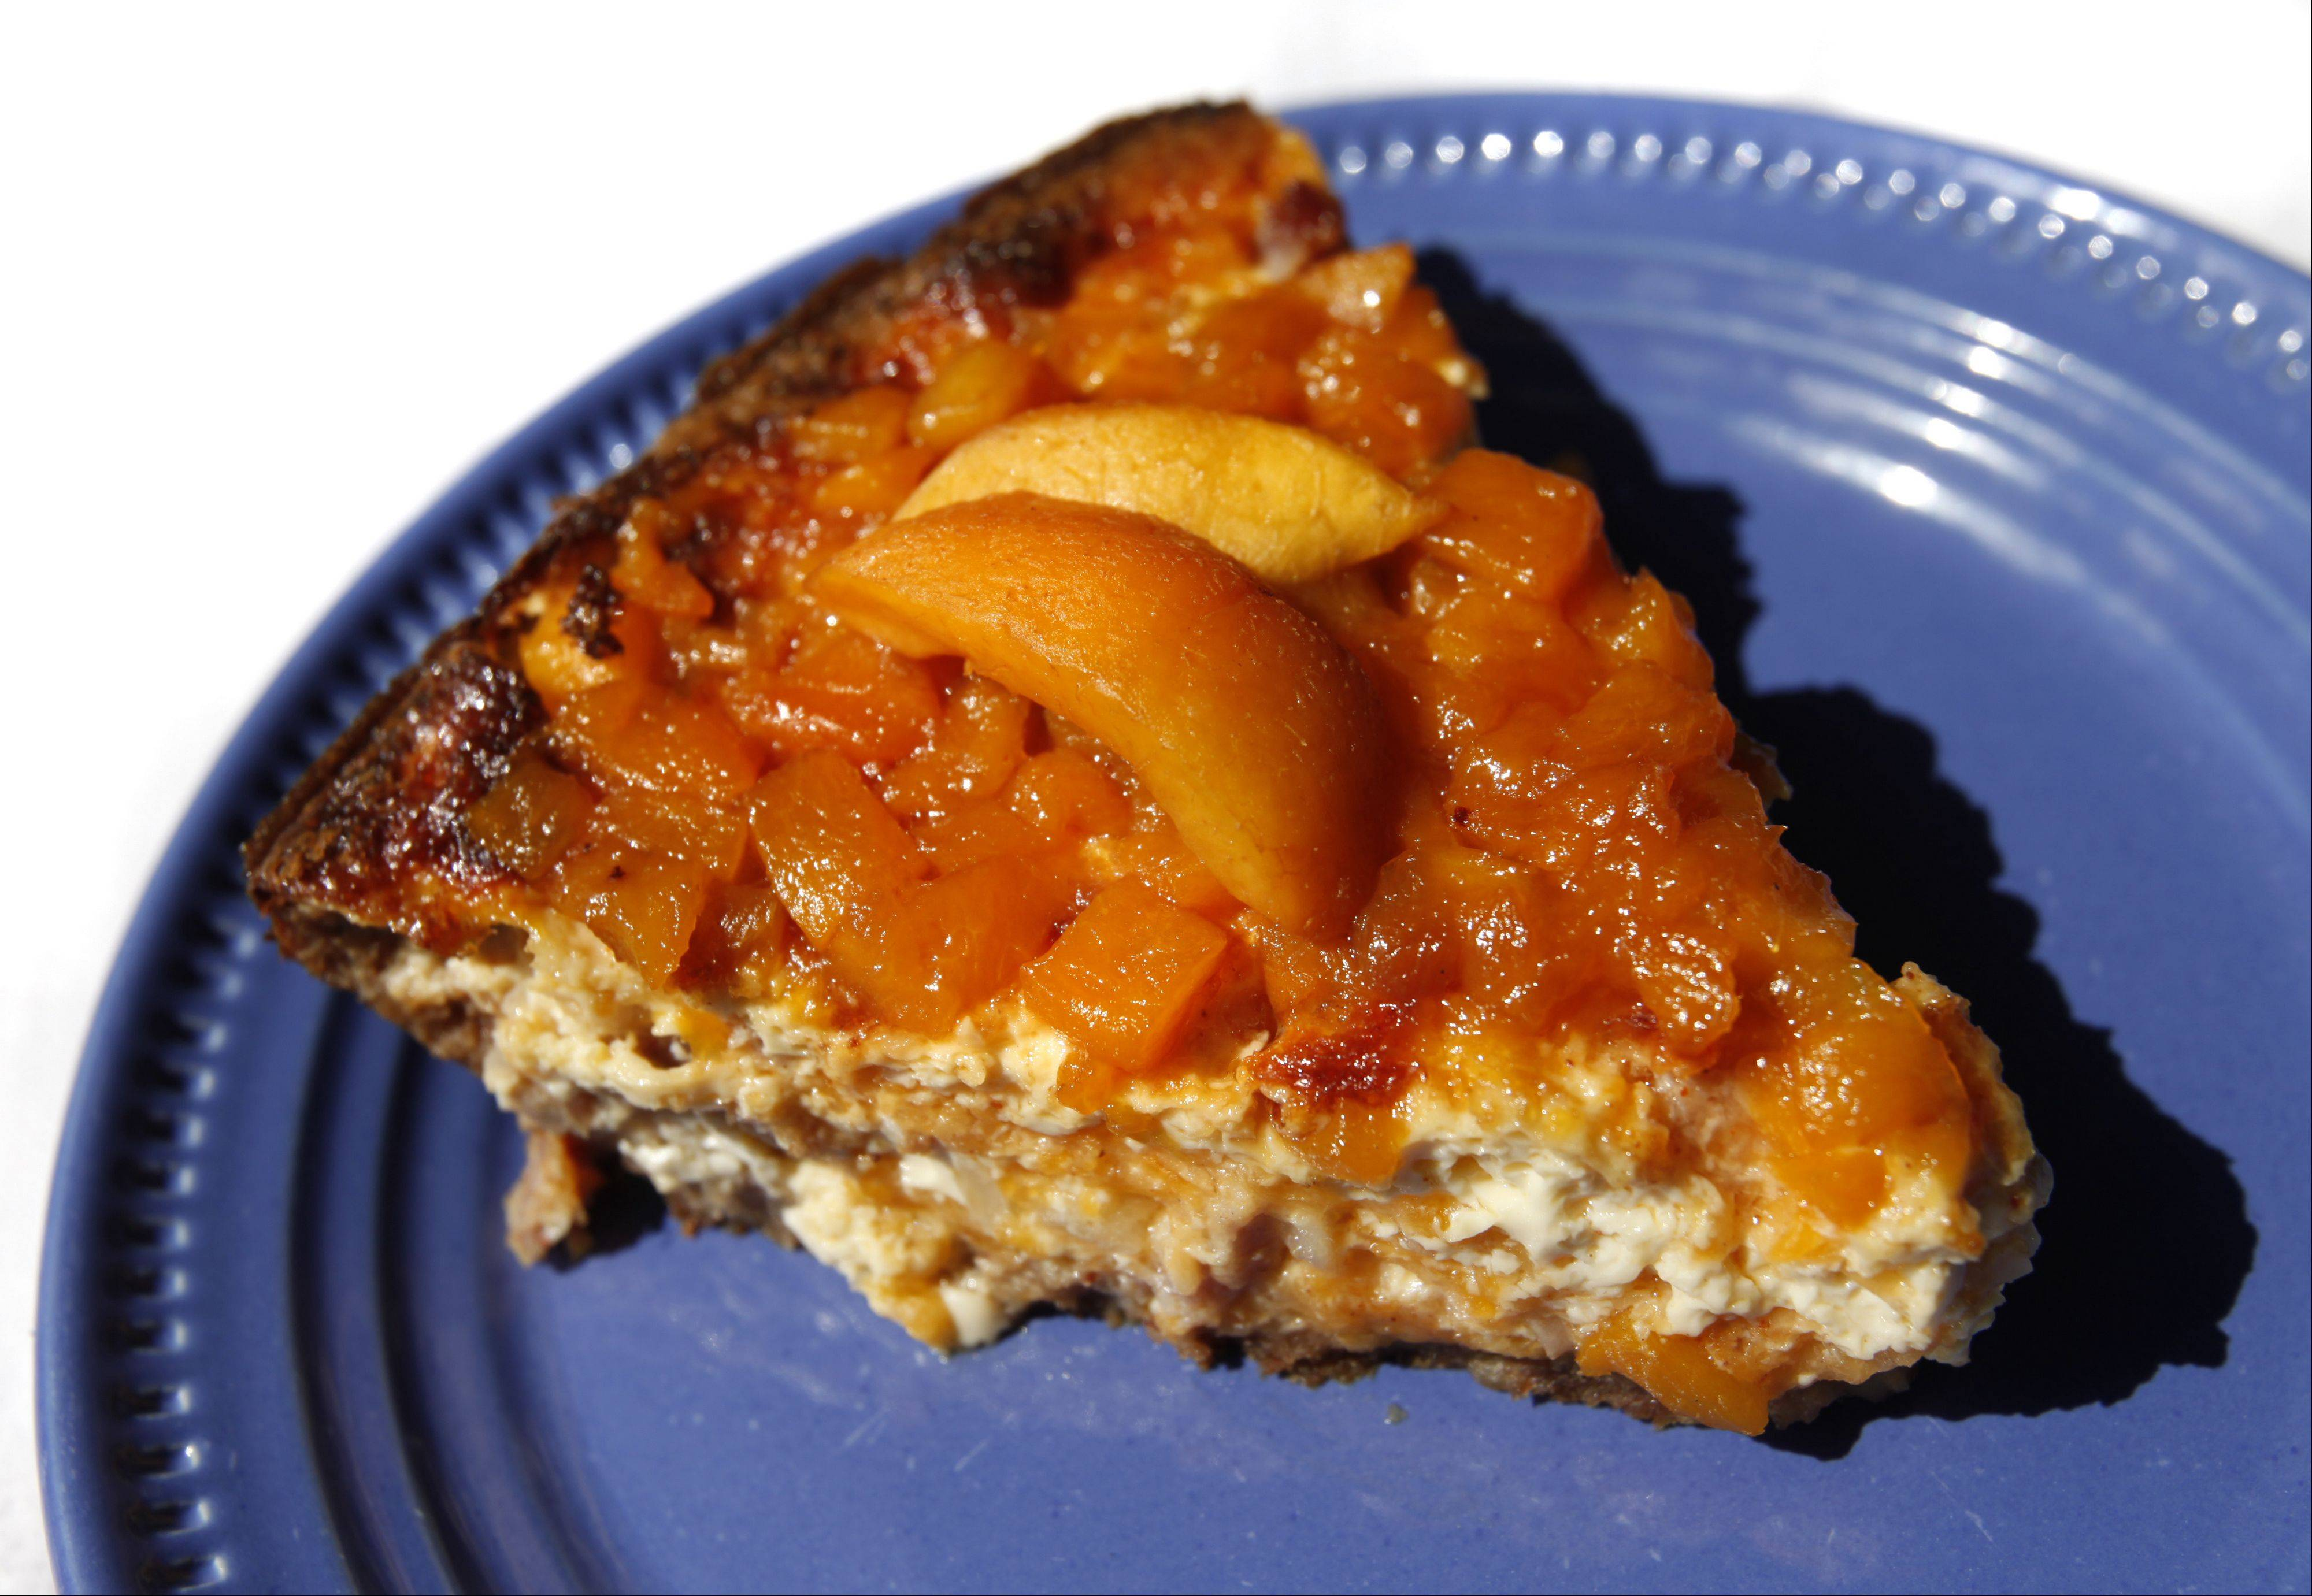 Mary Beth Thornton prepared a quiche created with peach-topped ham in a tater tot and pecan crust.